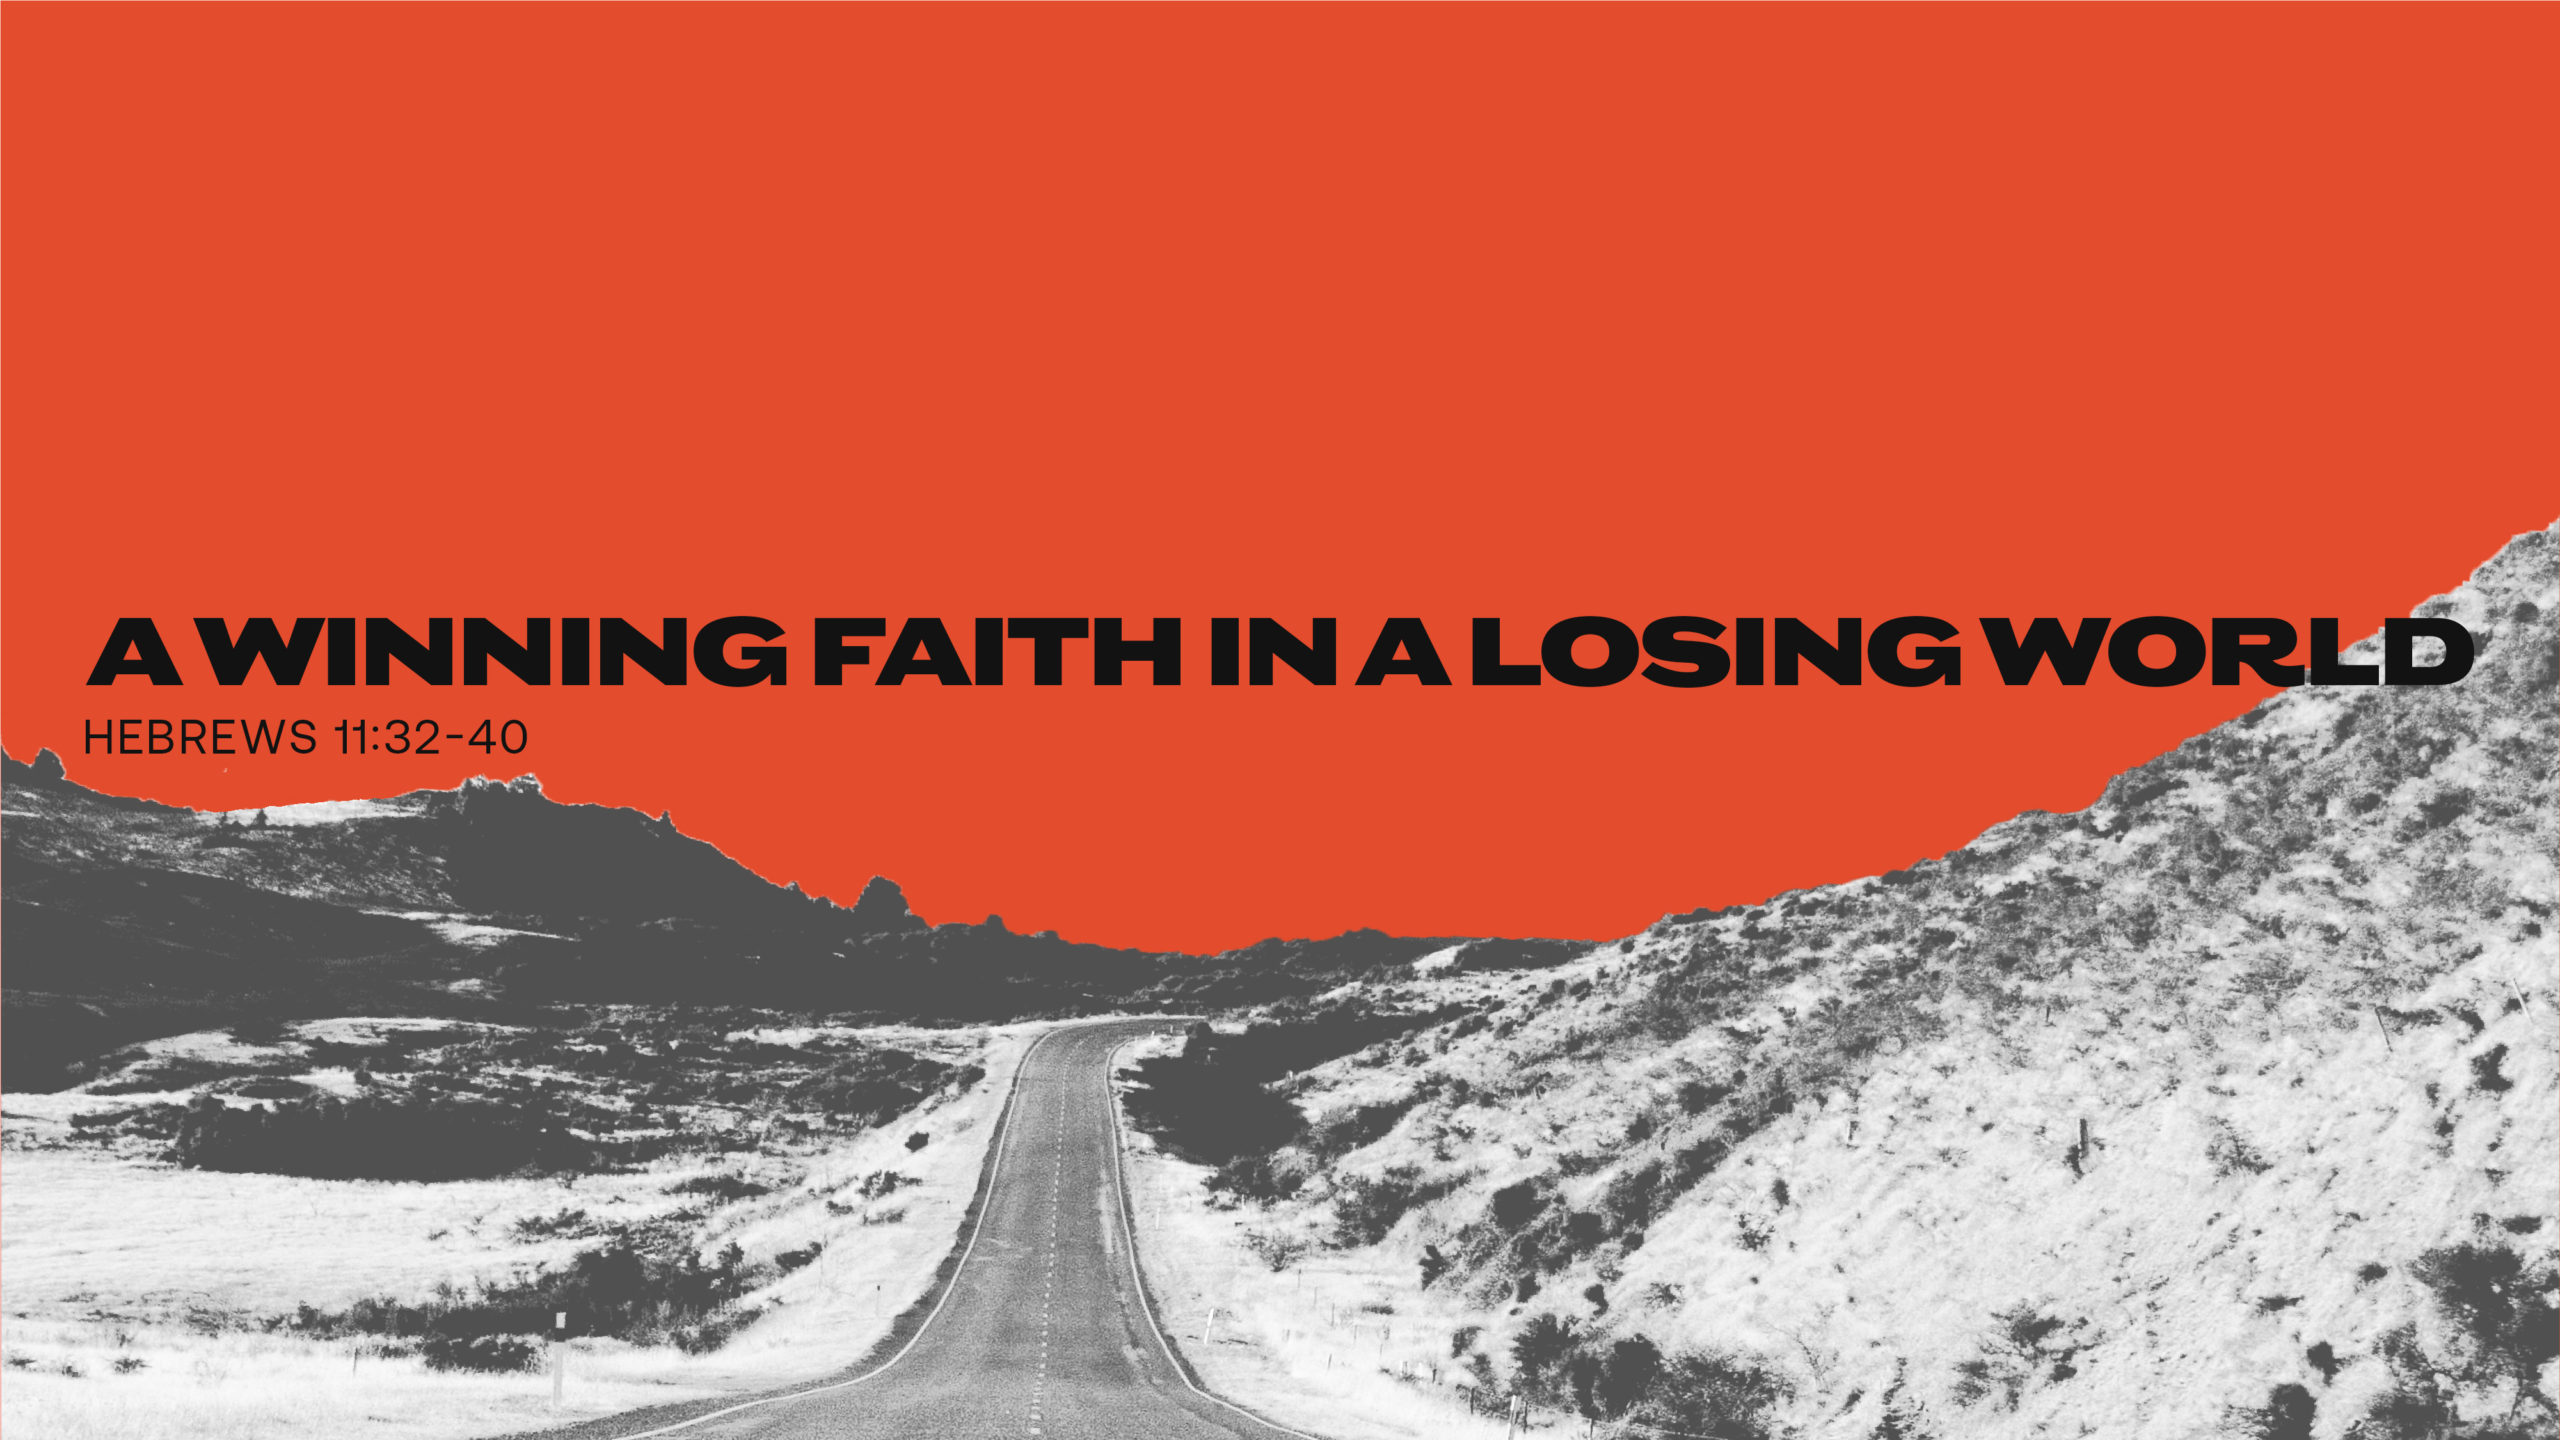 A Winning Faith in a Losing World